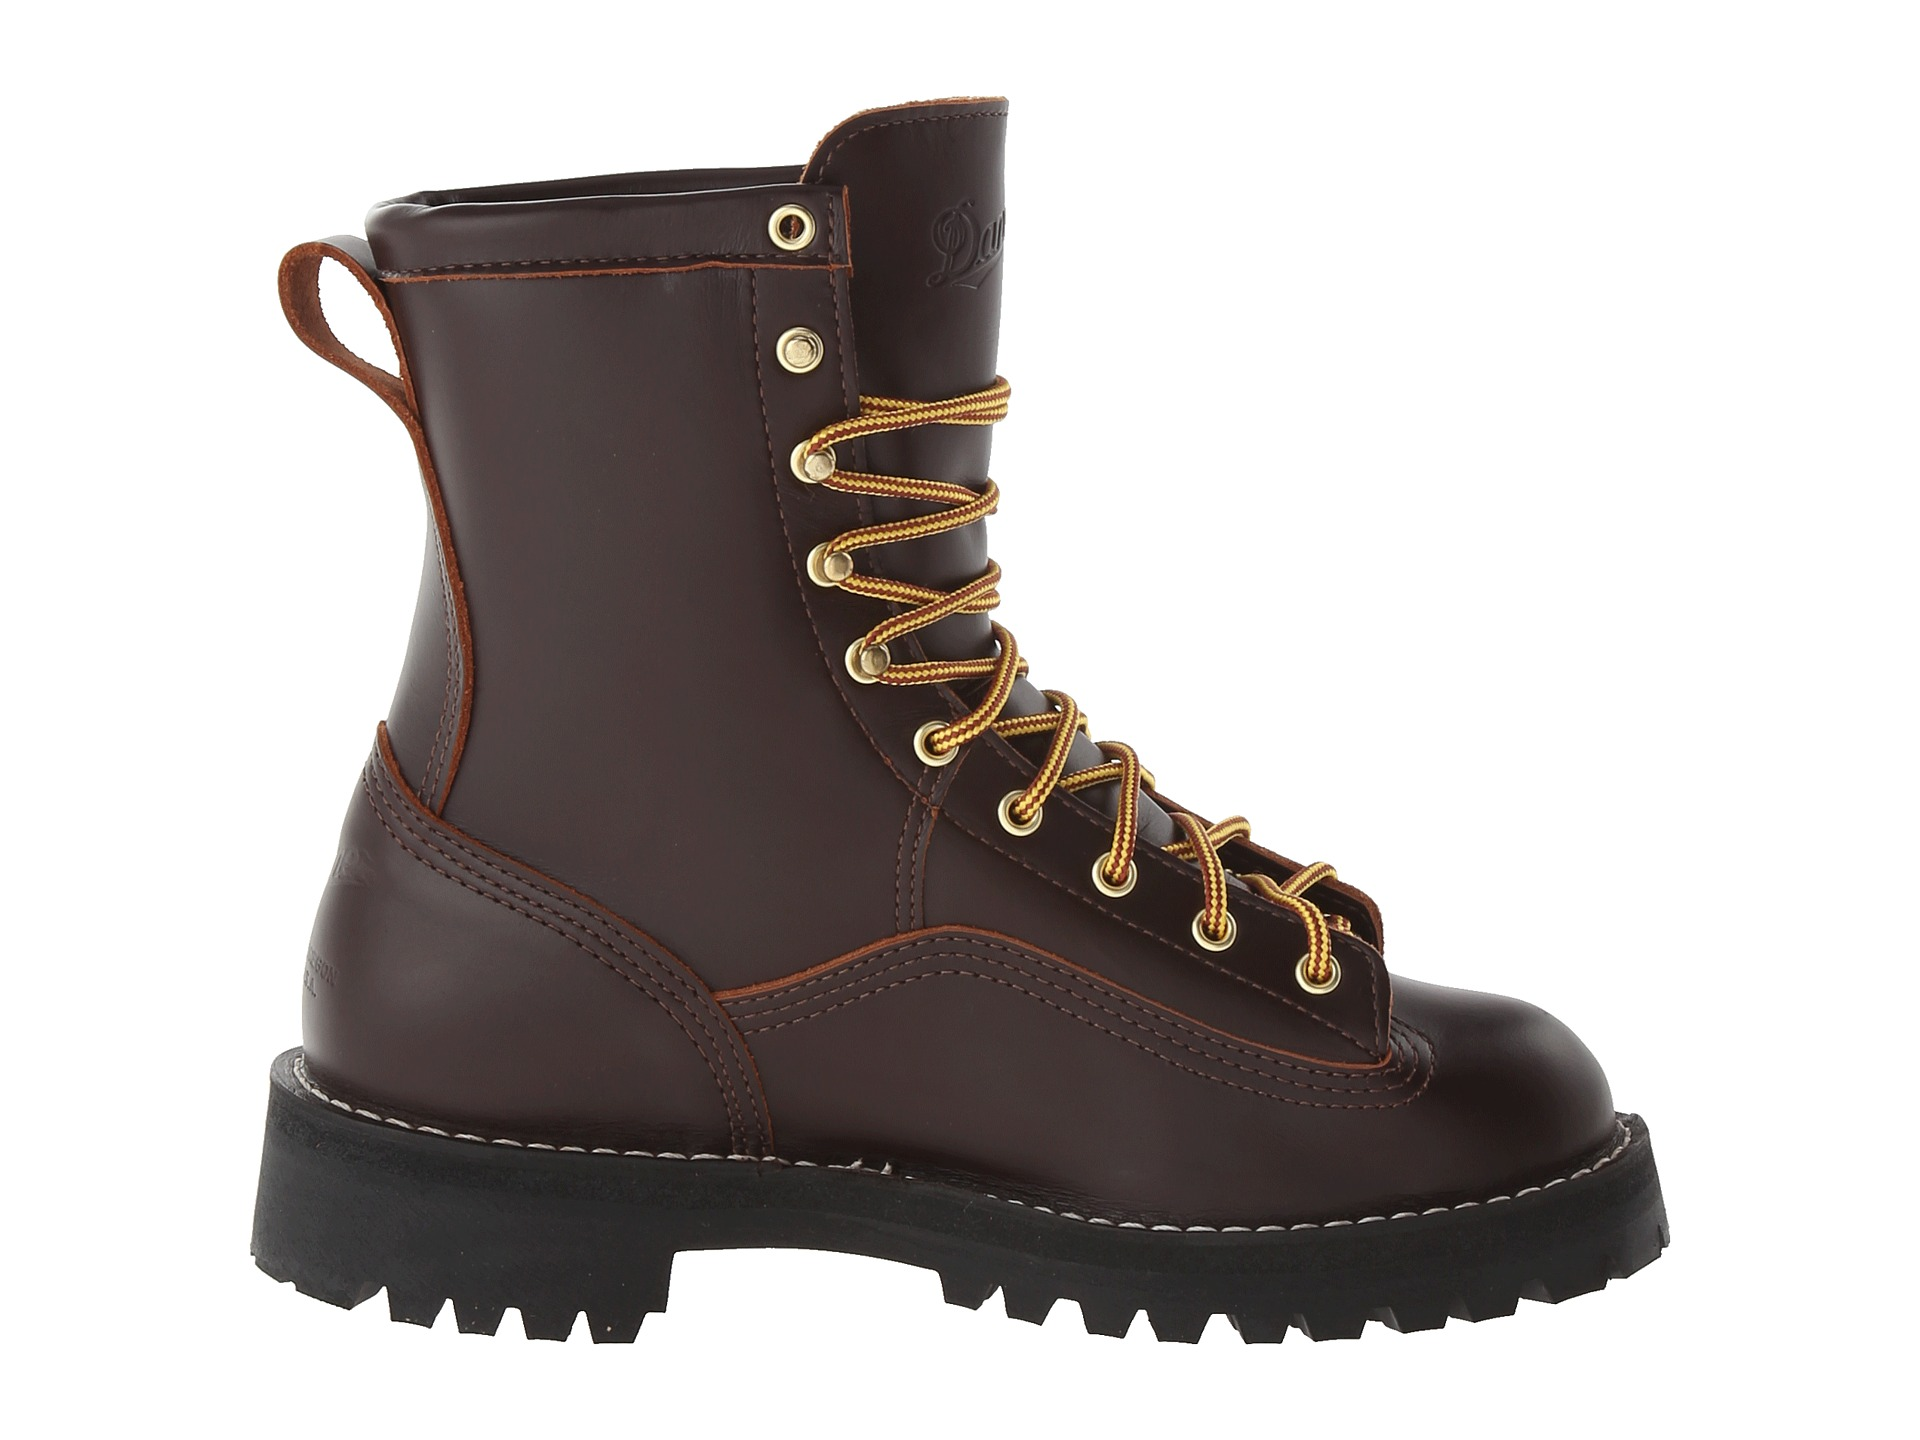 "Danner Rain Forest™ 8"" - Zappos.com Free Shipping BOTH Ways"